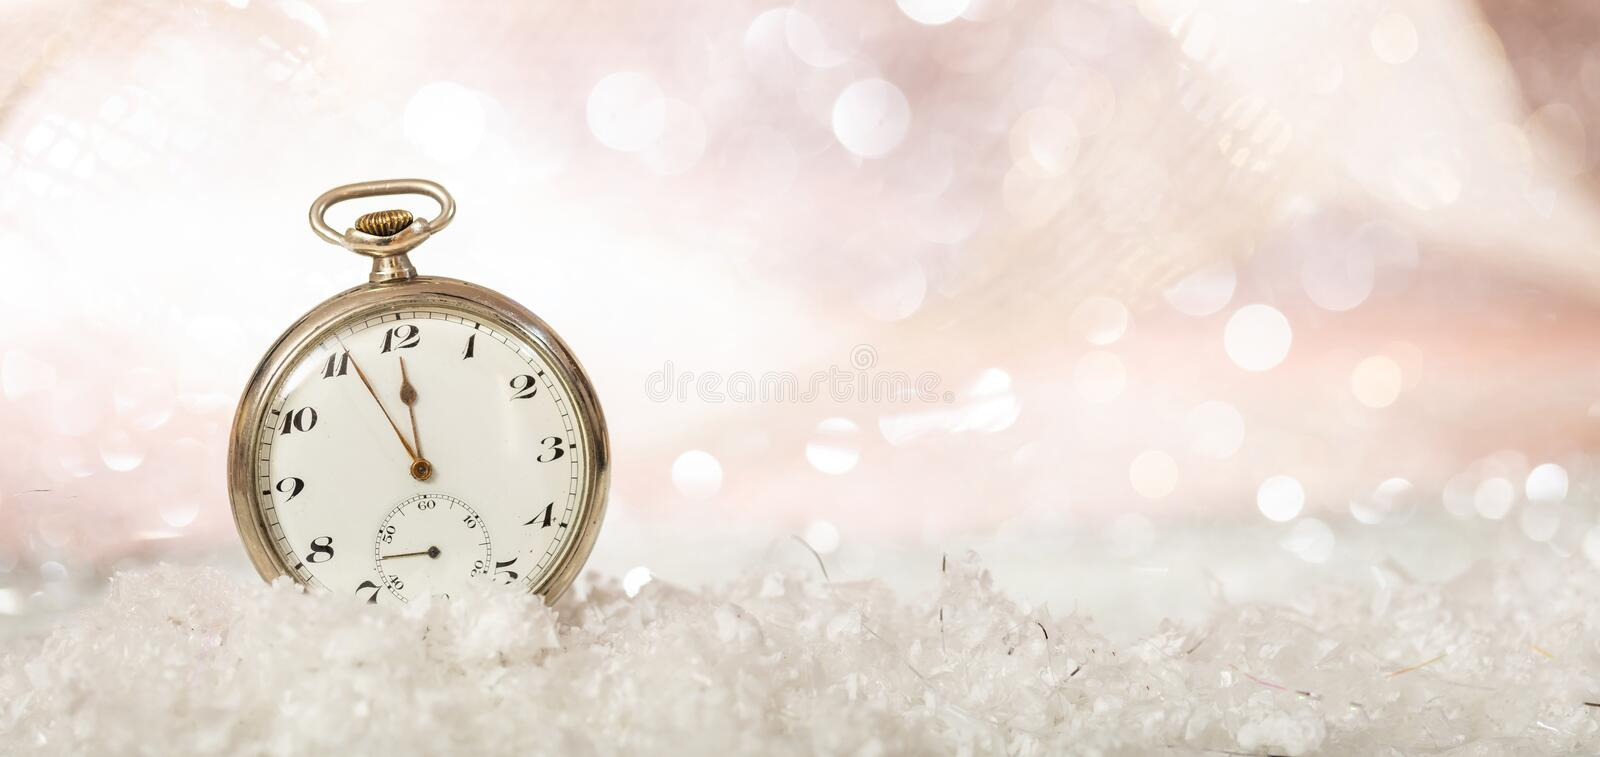 New Years eve party celebration. Minutes to midnight on an old fashioned pocket watch, bokeh snowy background, copy space. Banner royalty free stock photography